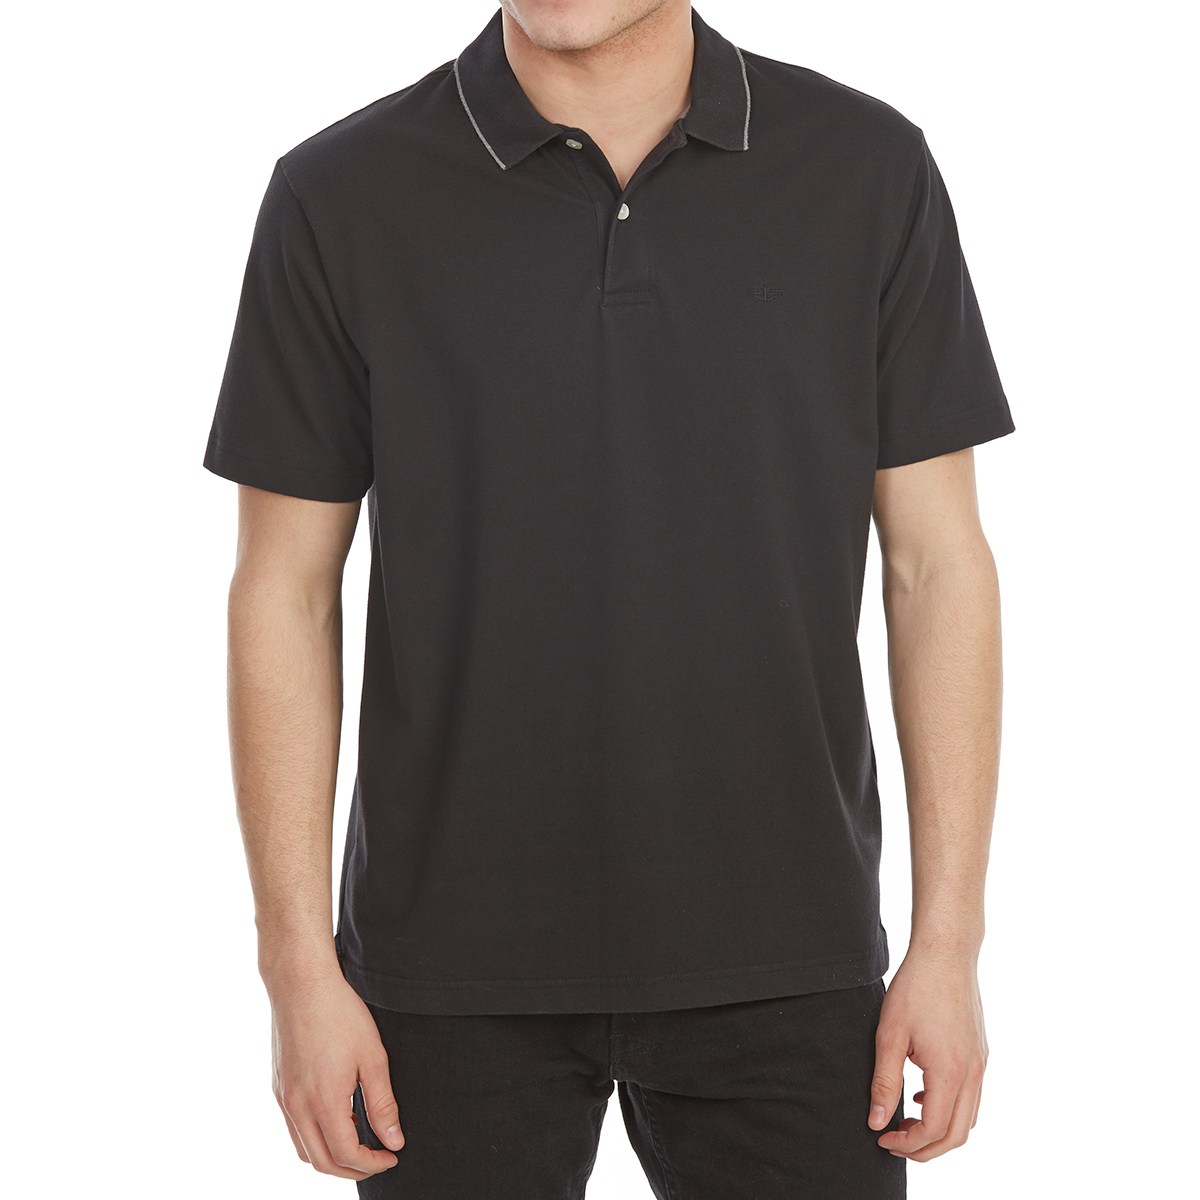 Dockers Men's Performance Short-Sleeve Polo Shirt - Black, L